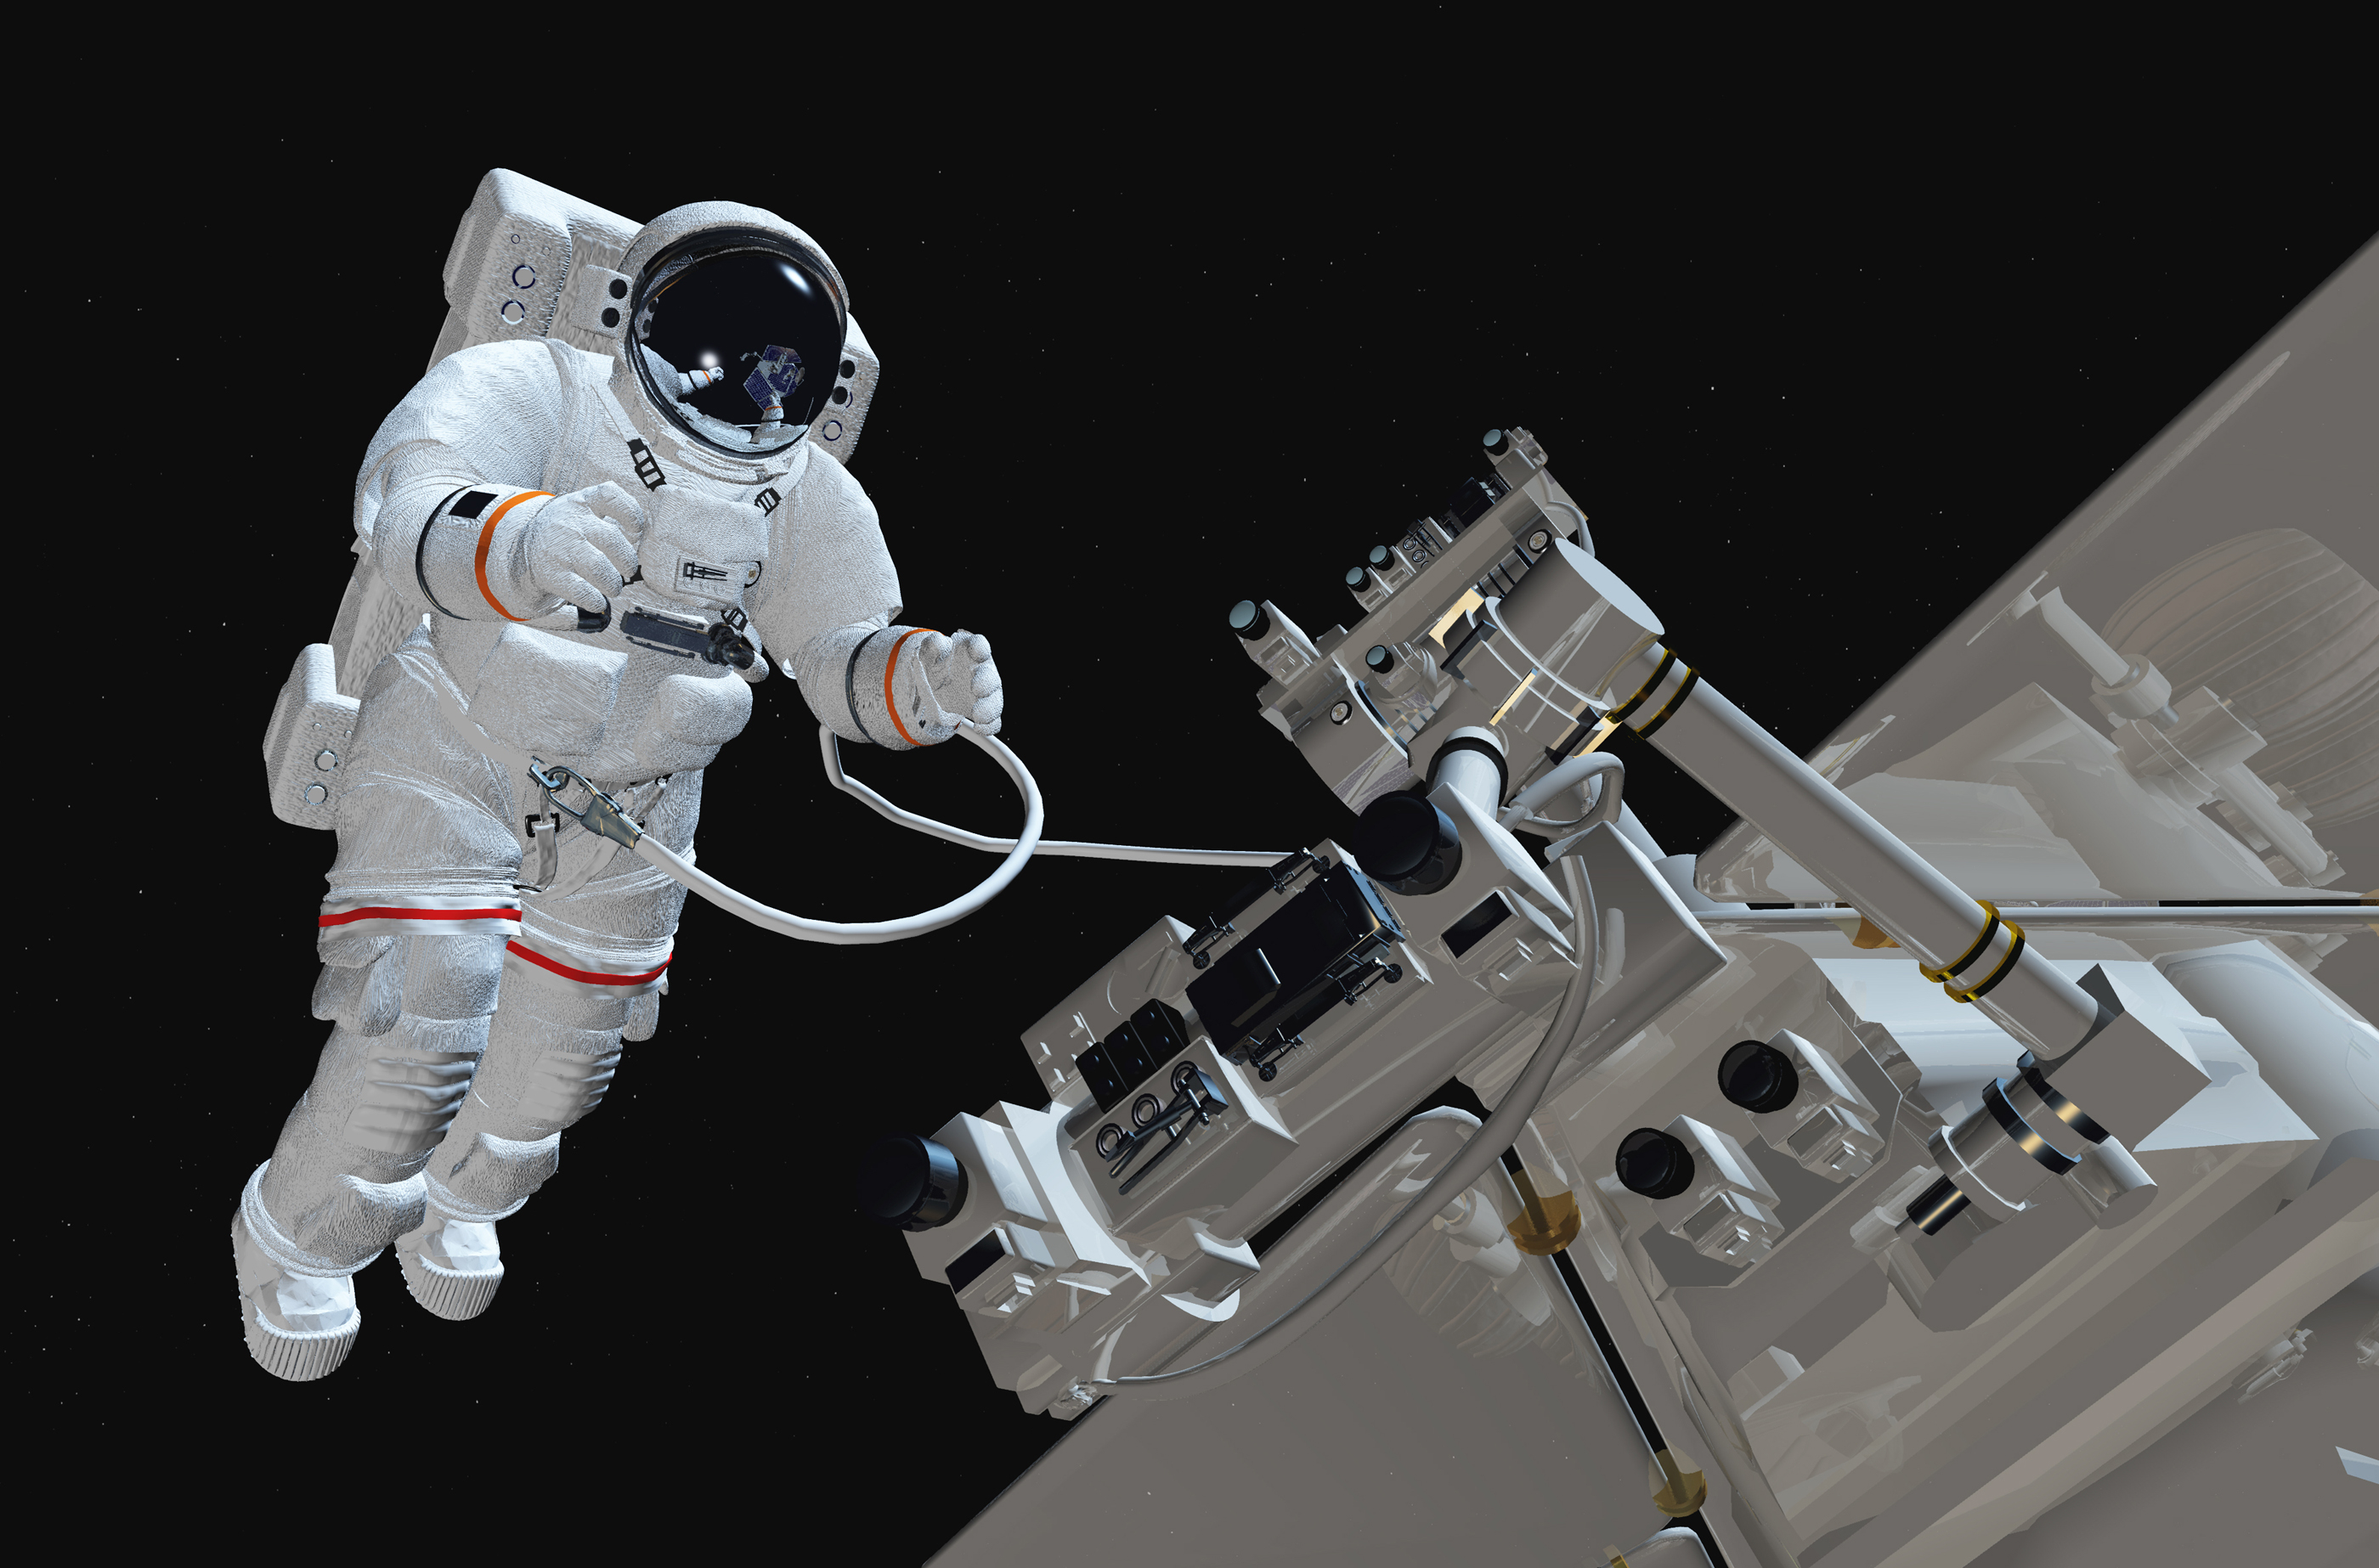 Nursing Schools In Arizona >> Don't space out: ASU business professor helps astronauts stay on task | ASU Now: Access ...